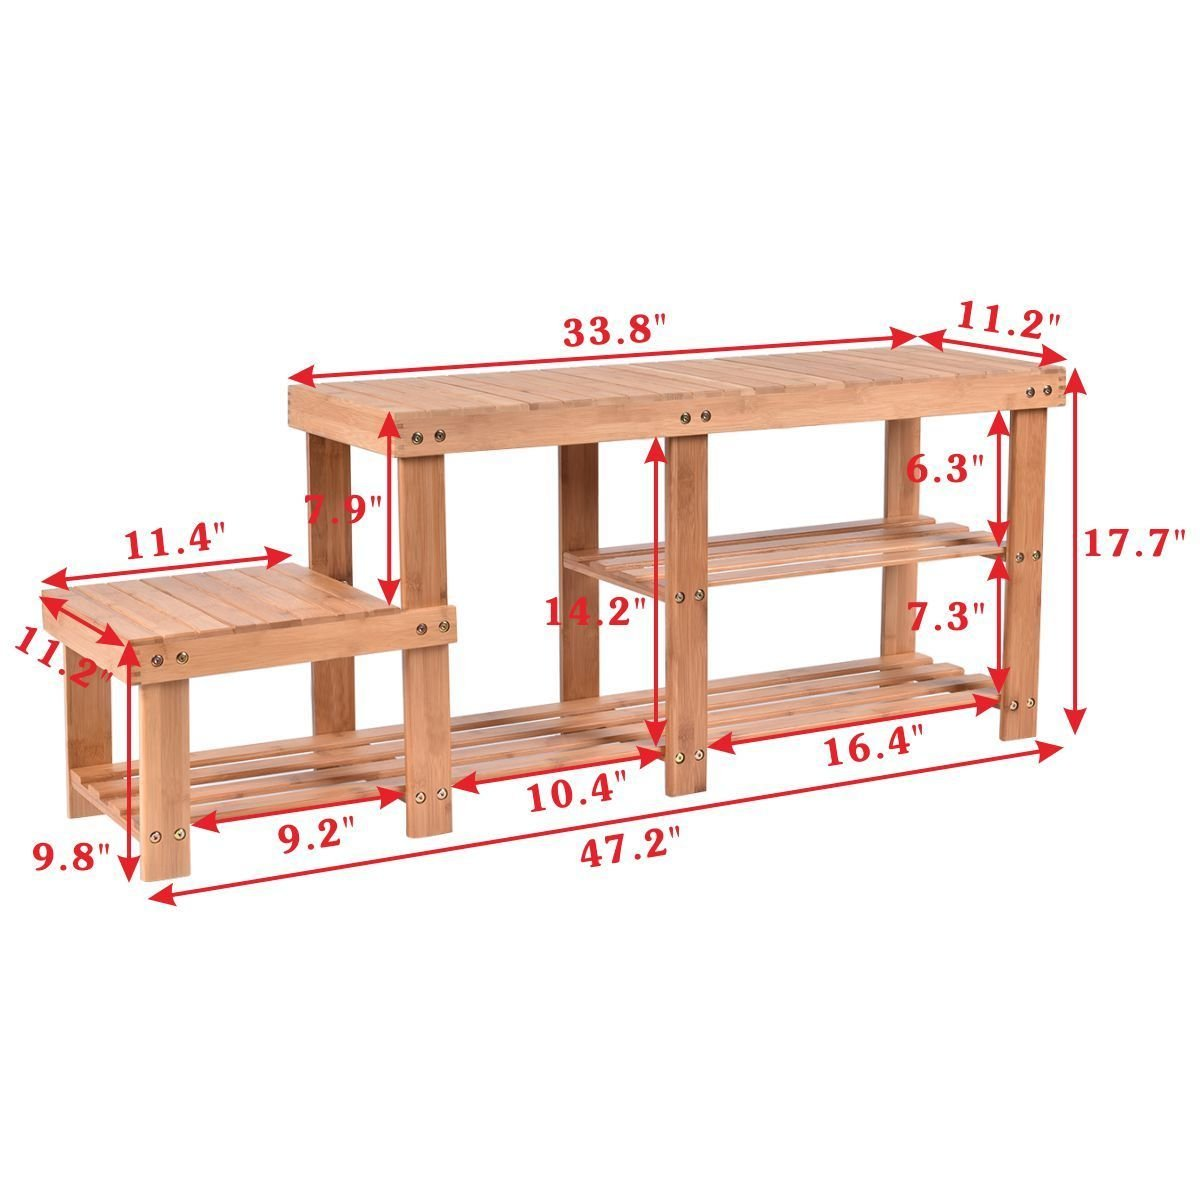 Costway Bamboo 2-tier Shoe Bench Seat Boot Organizing Rack Entryway Storage Shelf With High and Low Levels Entryway Hallway for Adult and Child by COSTWAY (Image #2)